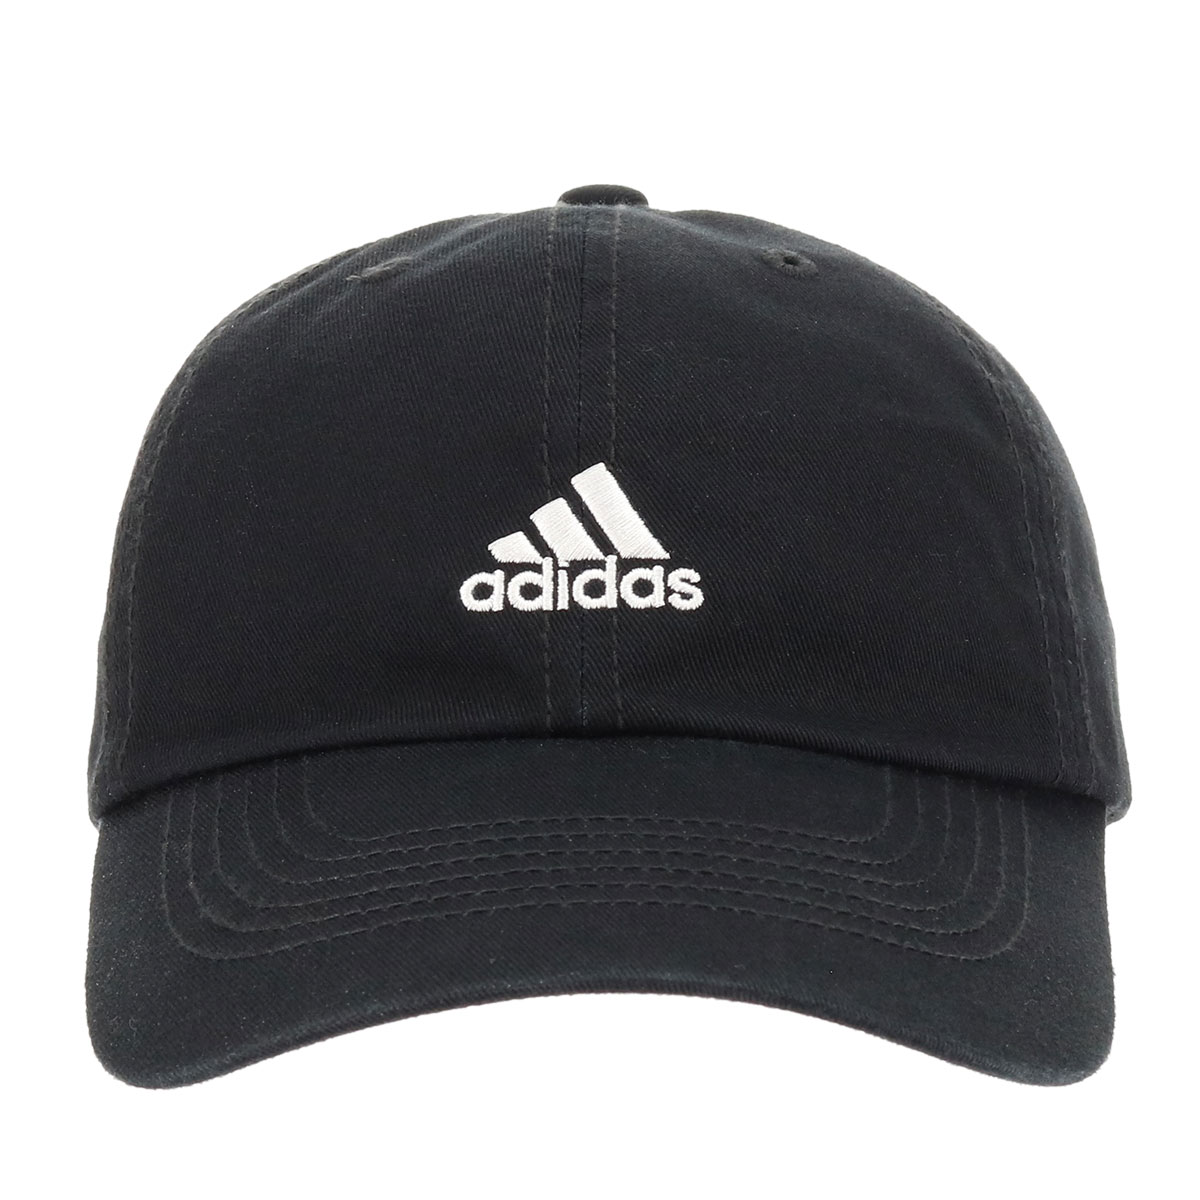 new lifestyle on feet images of first rate adidas Mens 6p Cap Cotton Hat Caps rmrvpark.ca